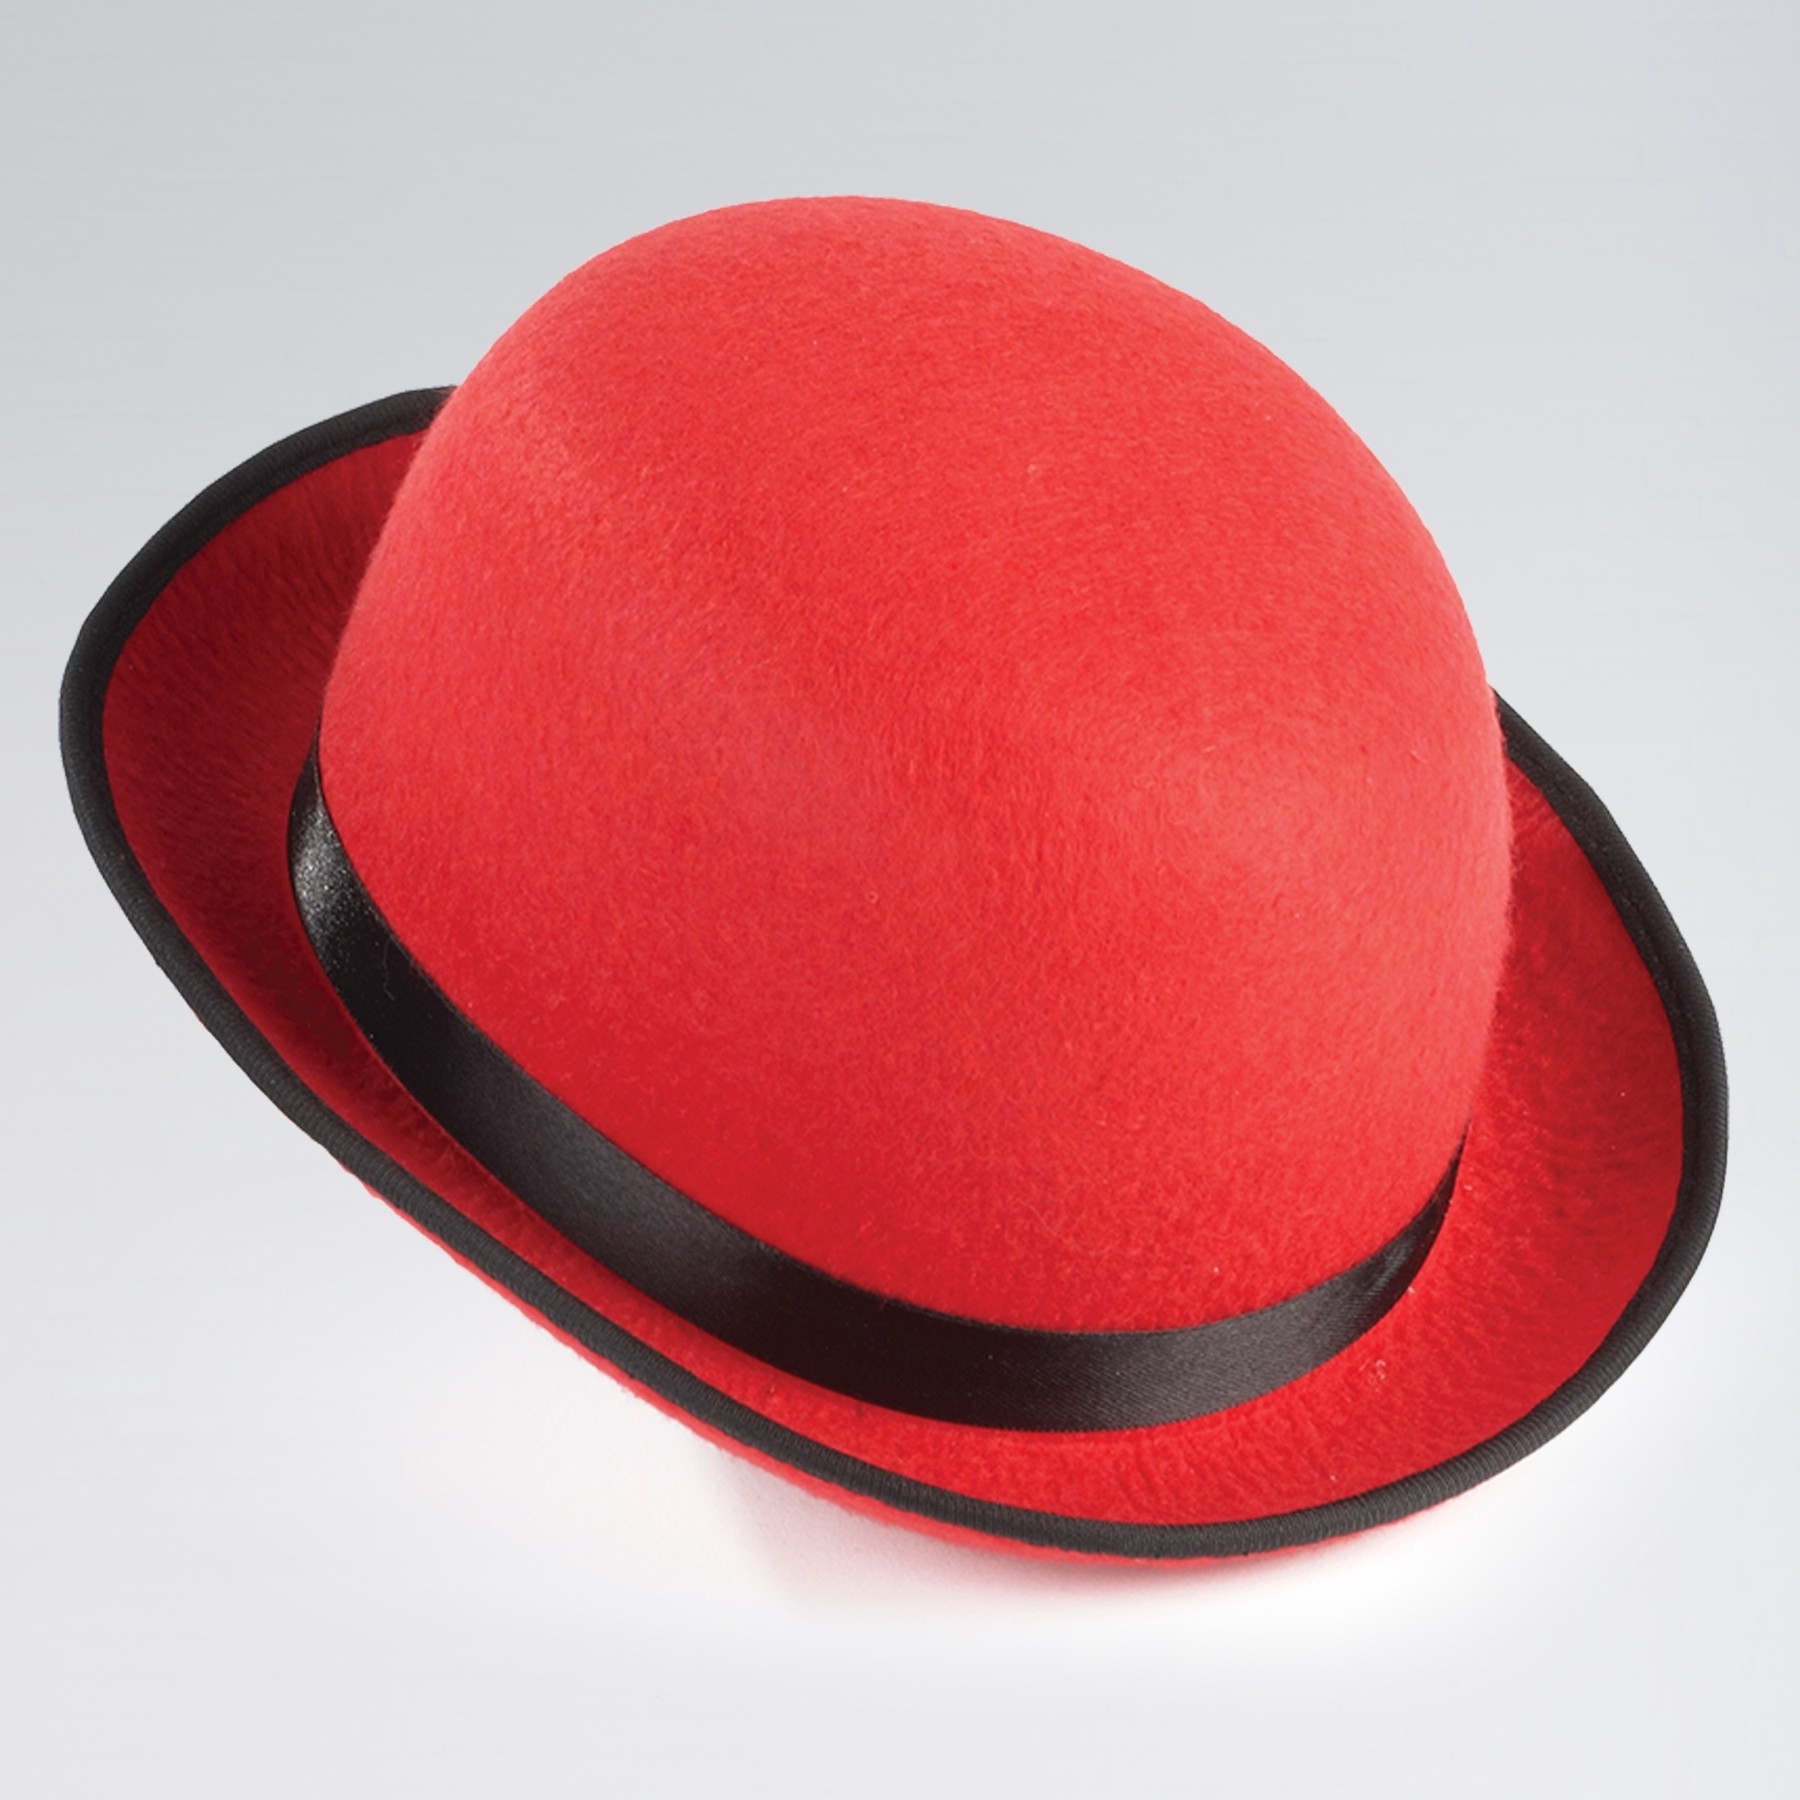 Felt Bowler Hat Red with Black Trim